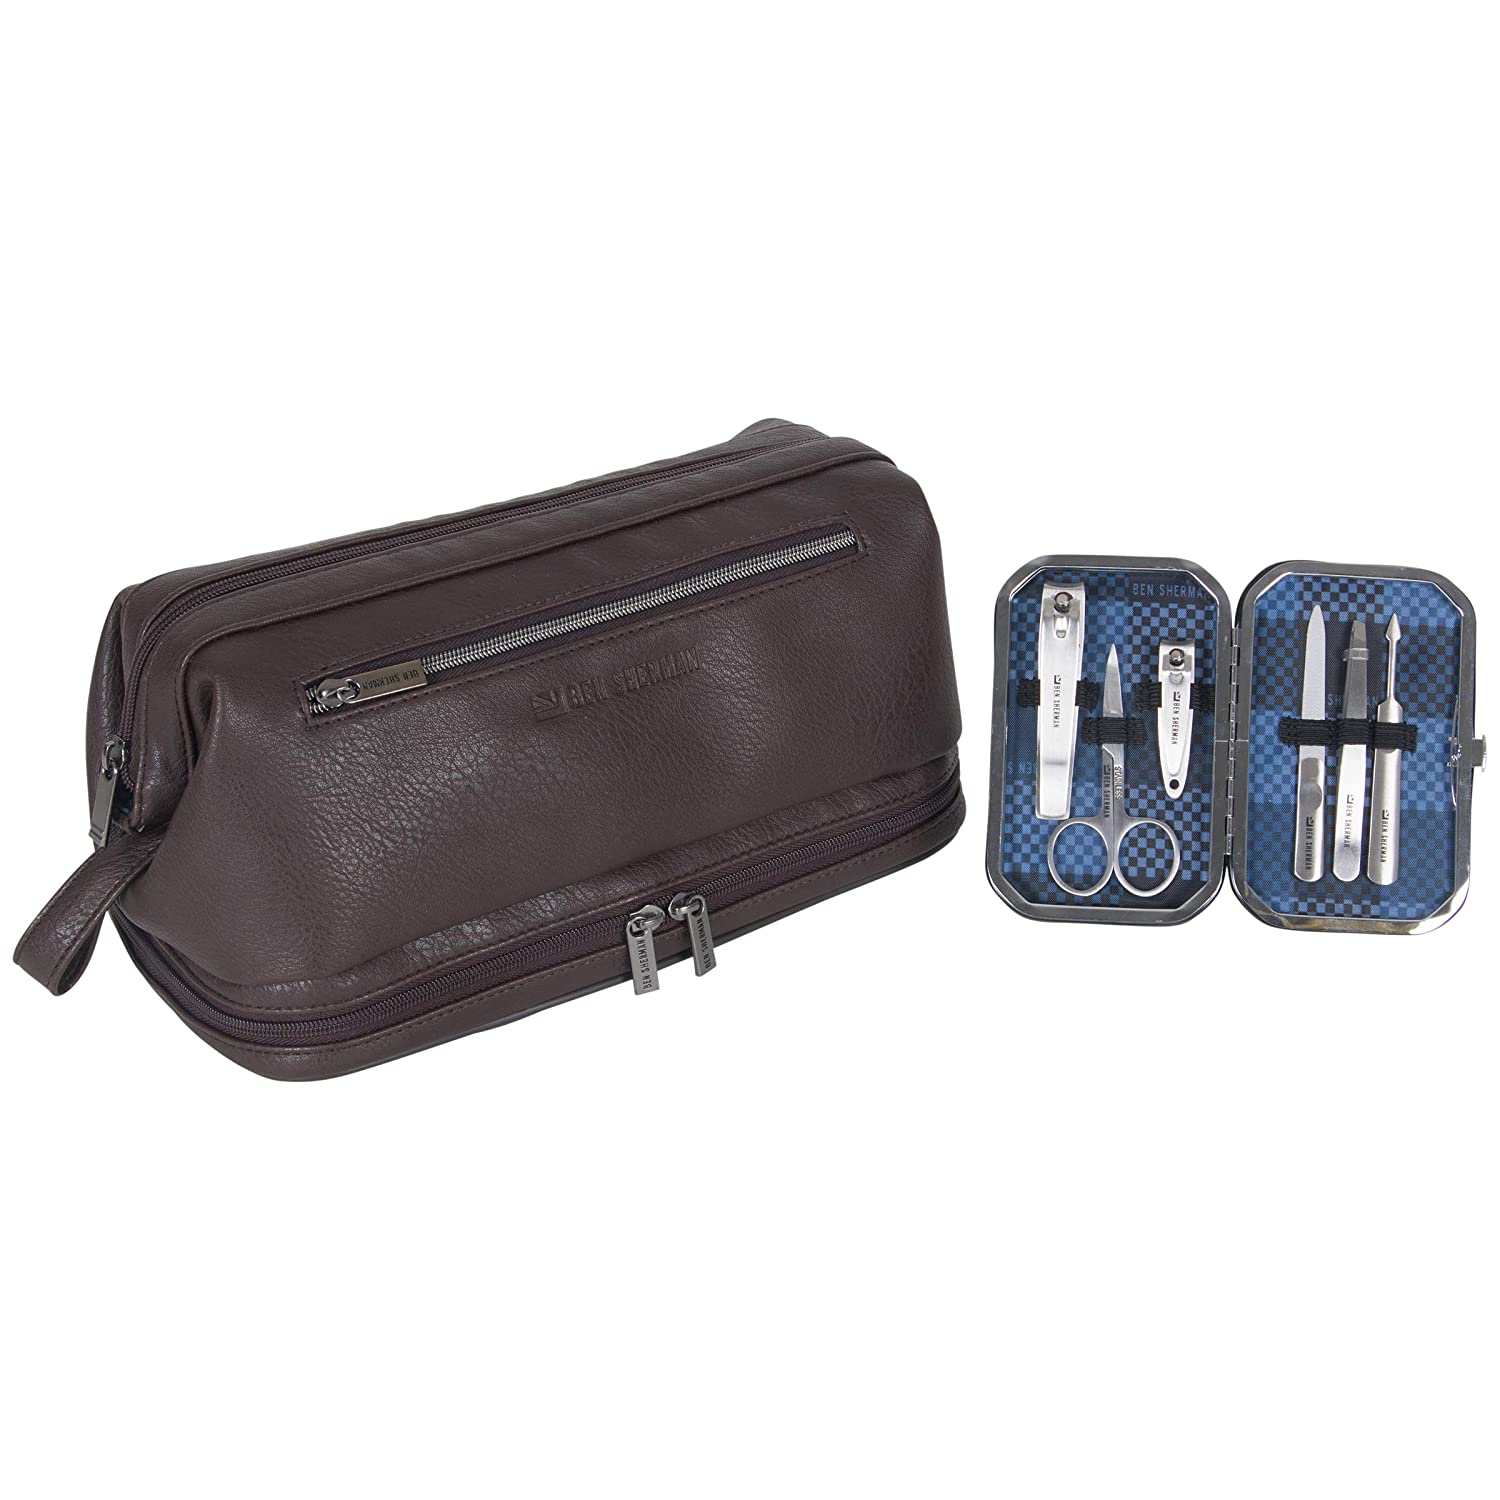 Ben Sherman Noak Hill Collection Vegan Leather Toiletry Travel Kit, Brown, 2PC Set: Industrial & Scientific